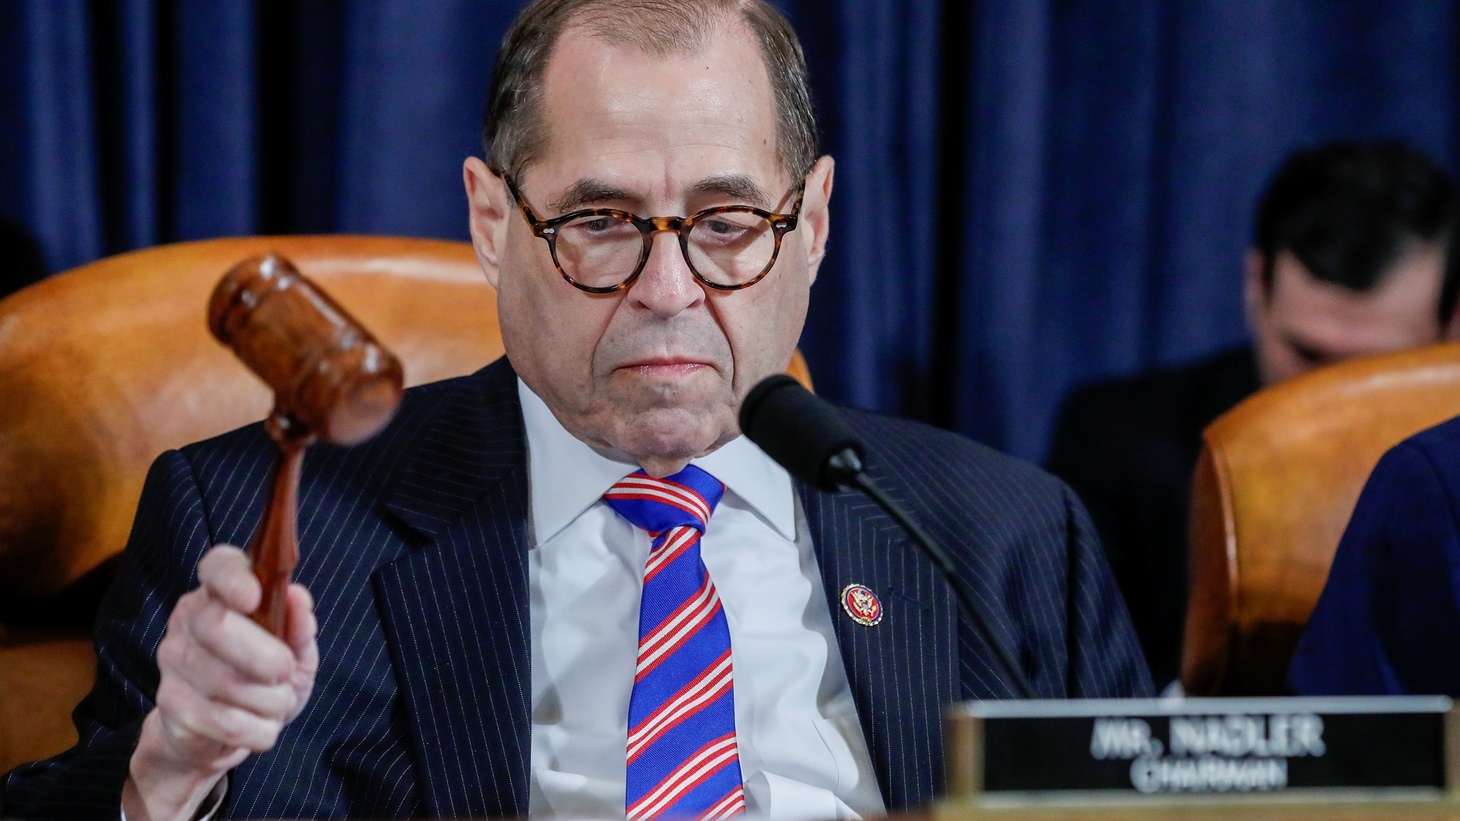 House Judiciary Committee Chairman Rep. Jerrold Nadler (D-NY) chairs a House Judiciary Committee hearing on the impeachment Inquiry into U.S. President Donald Trump on Capitol Hill in Washington, U.S., December 4, 2019.